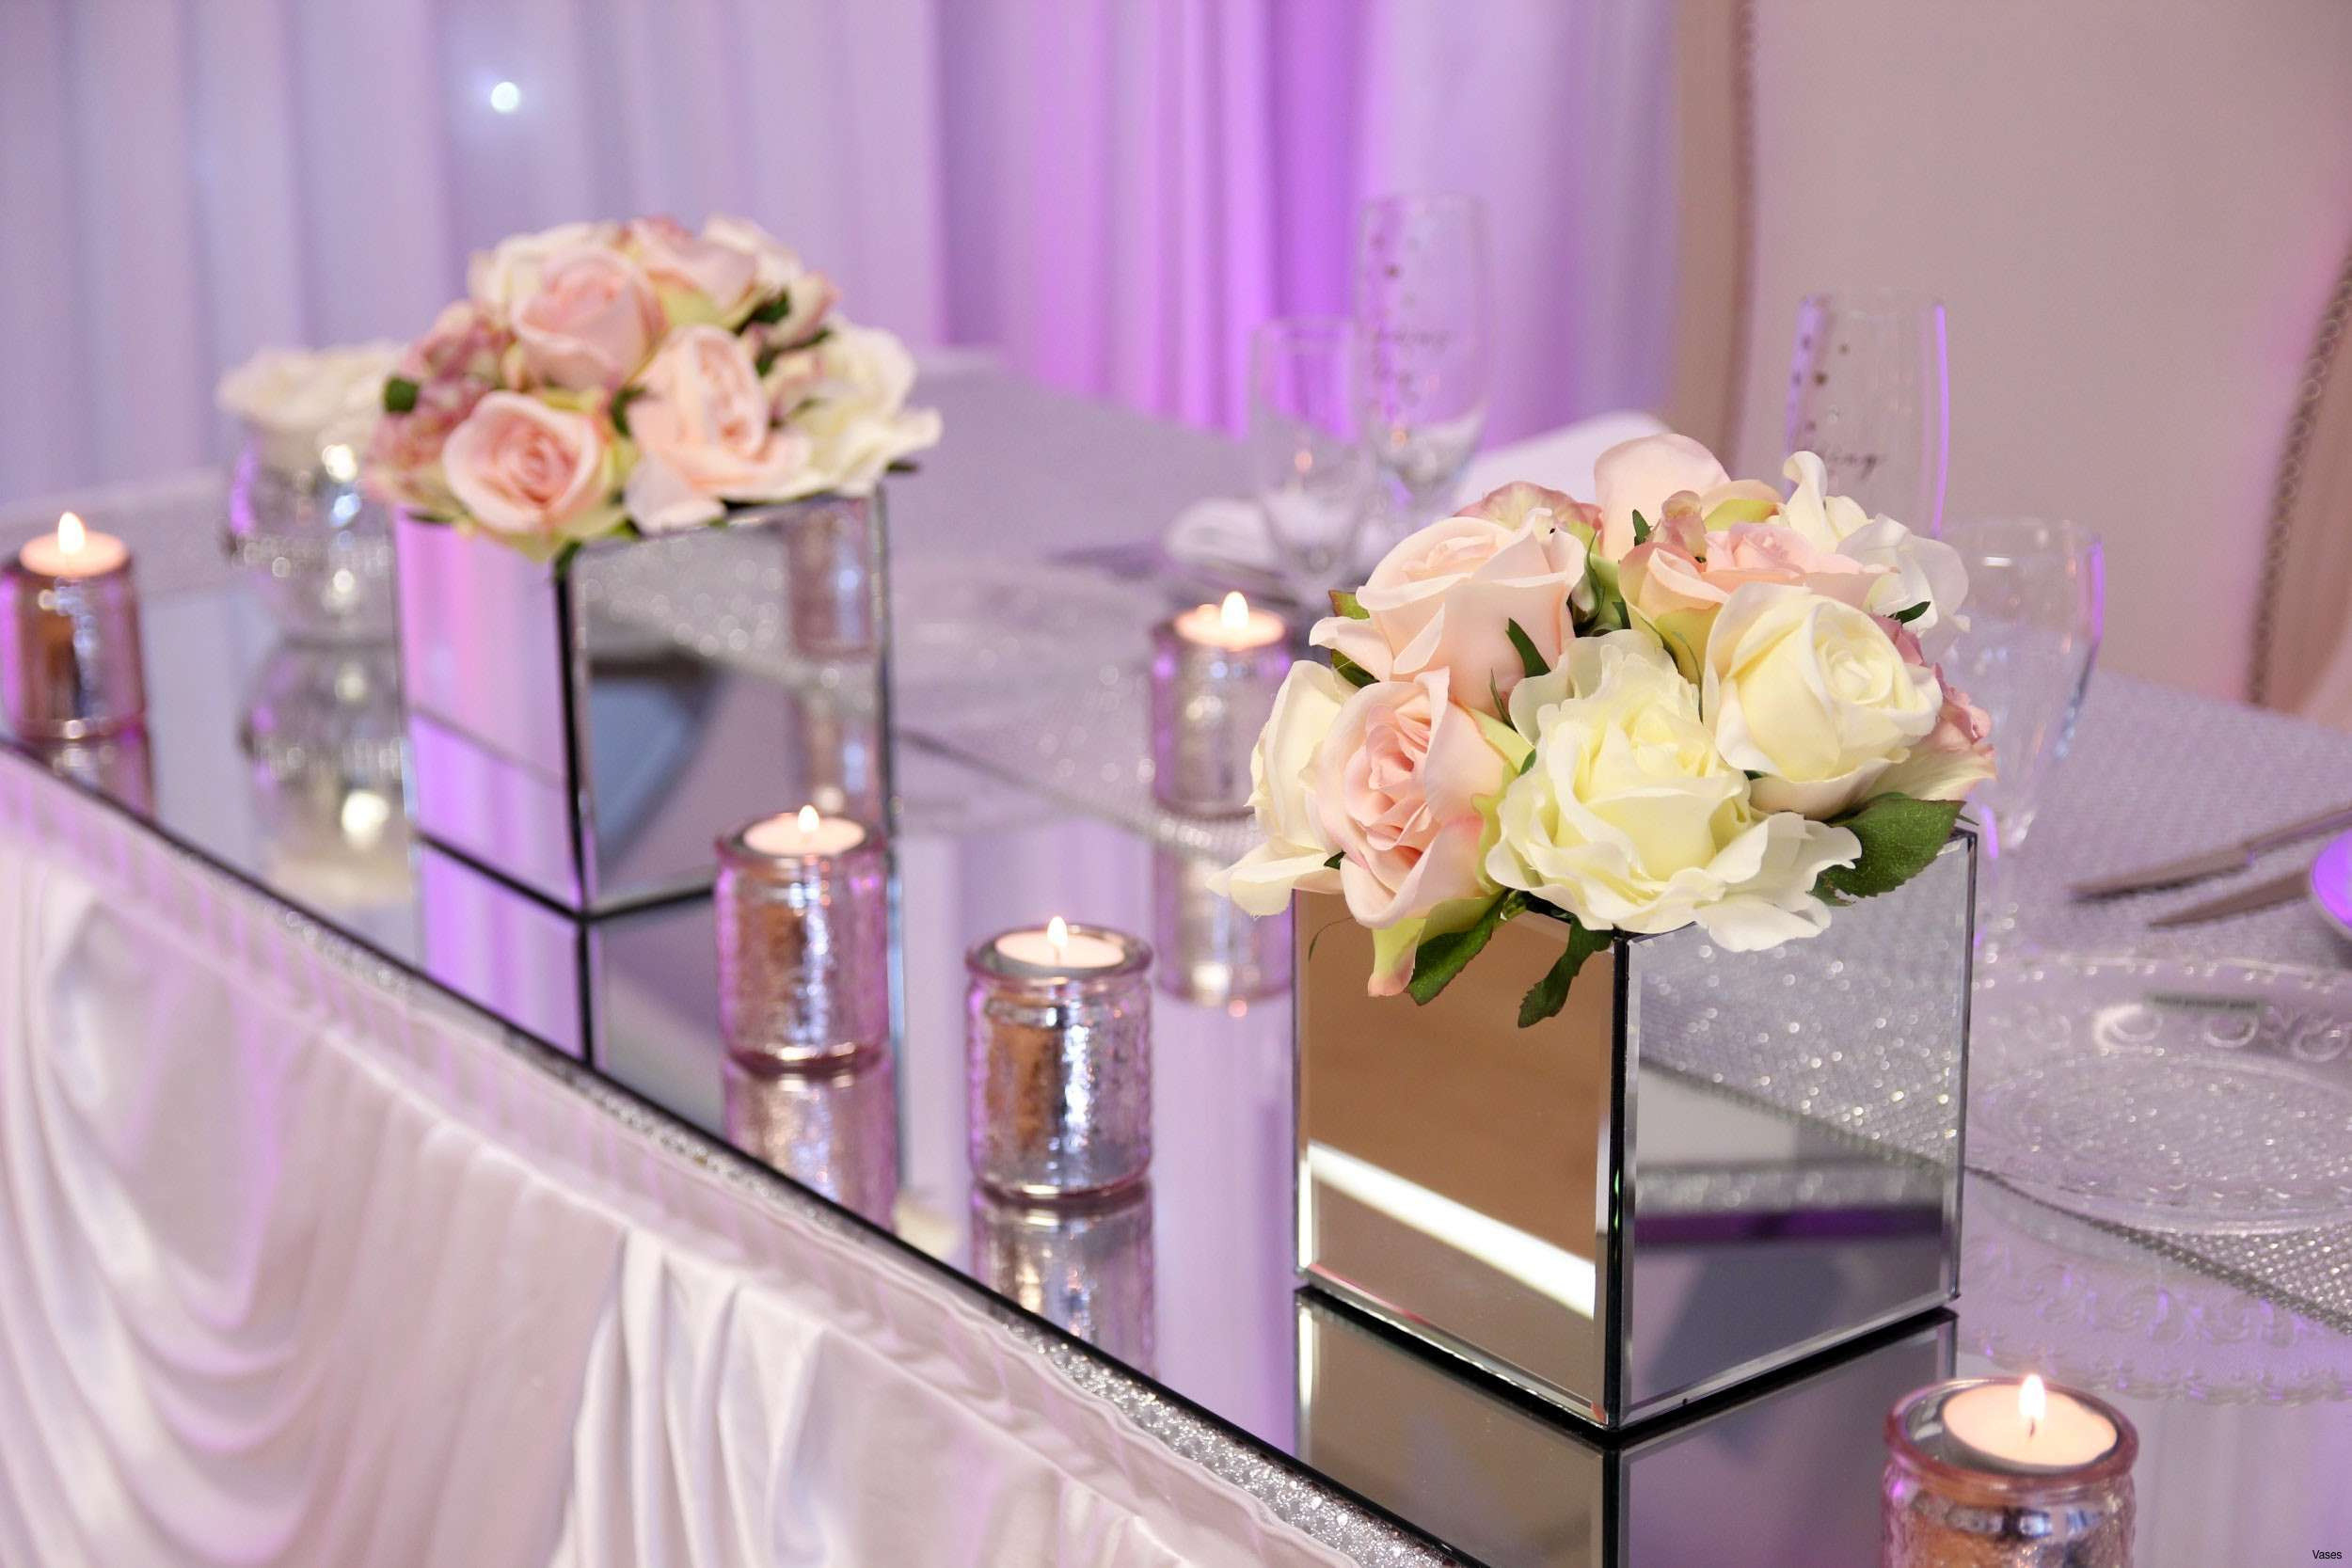 rose vases wholesale of sequin tablecloth wholesale top proud rose black linen table cloth intended for sequin tablecloth wholesale best of mirrored square vase 3h vases mirror table decorationi 0d weddings